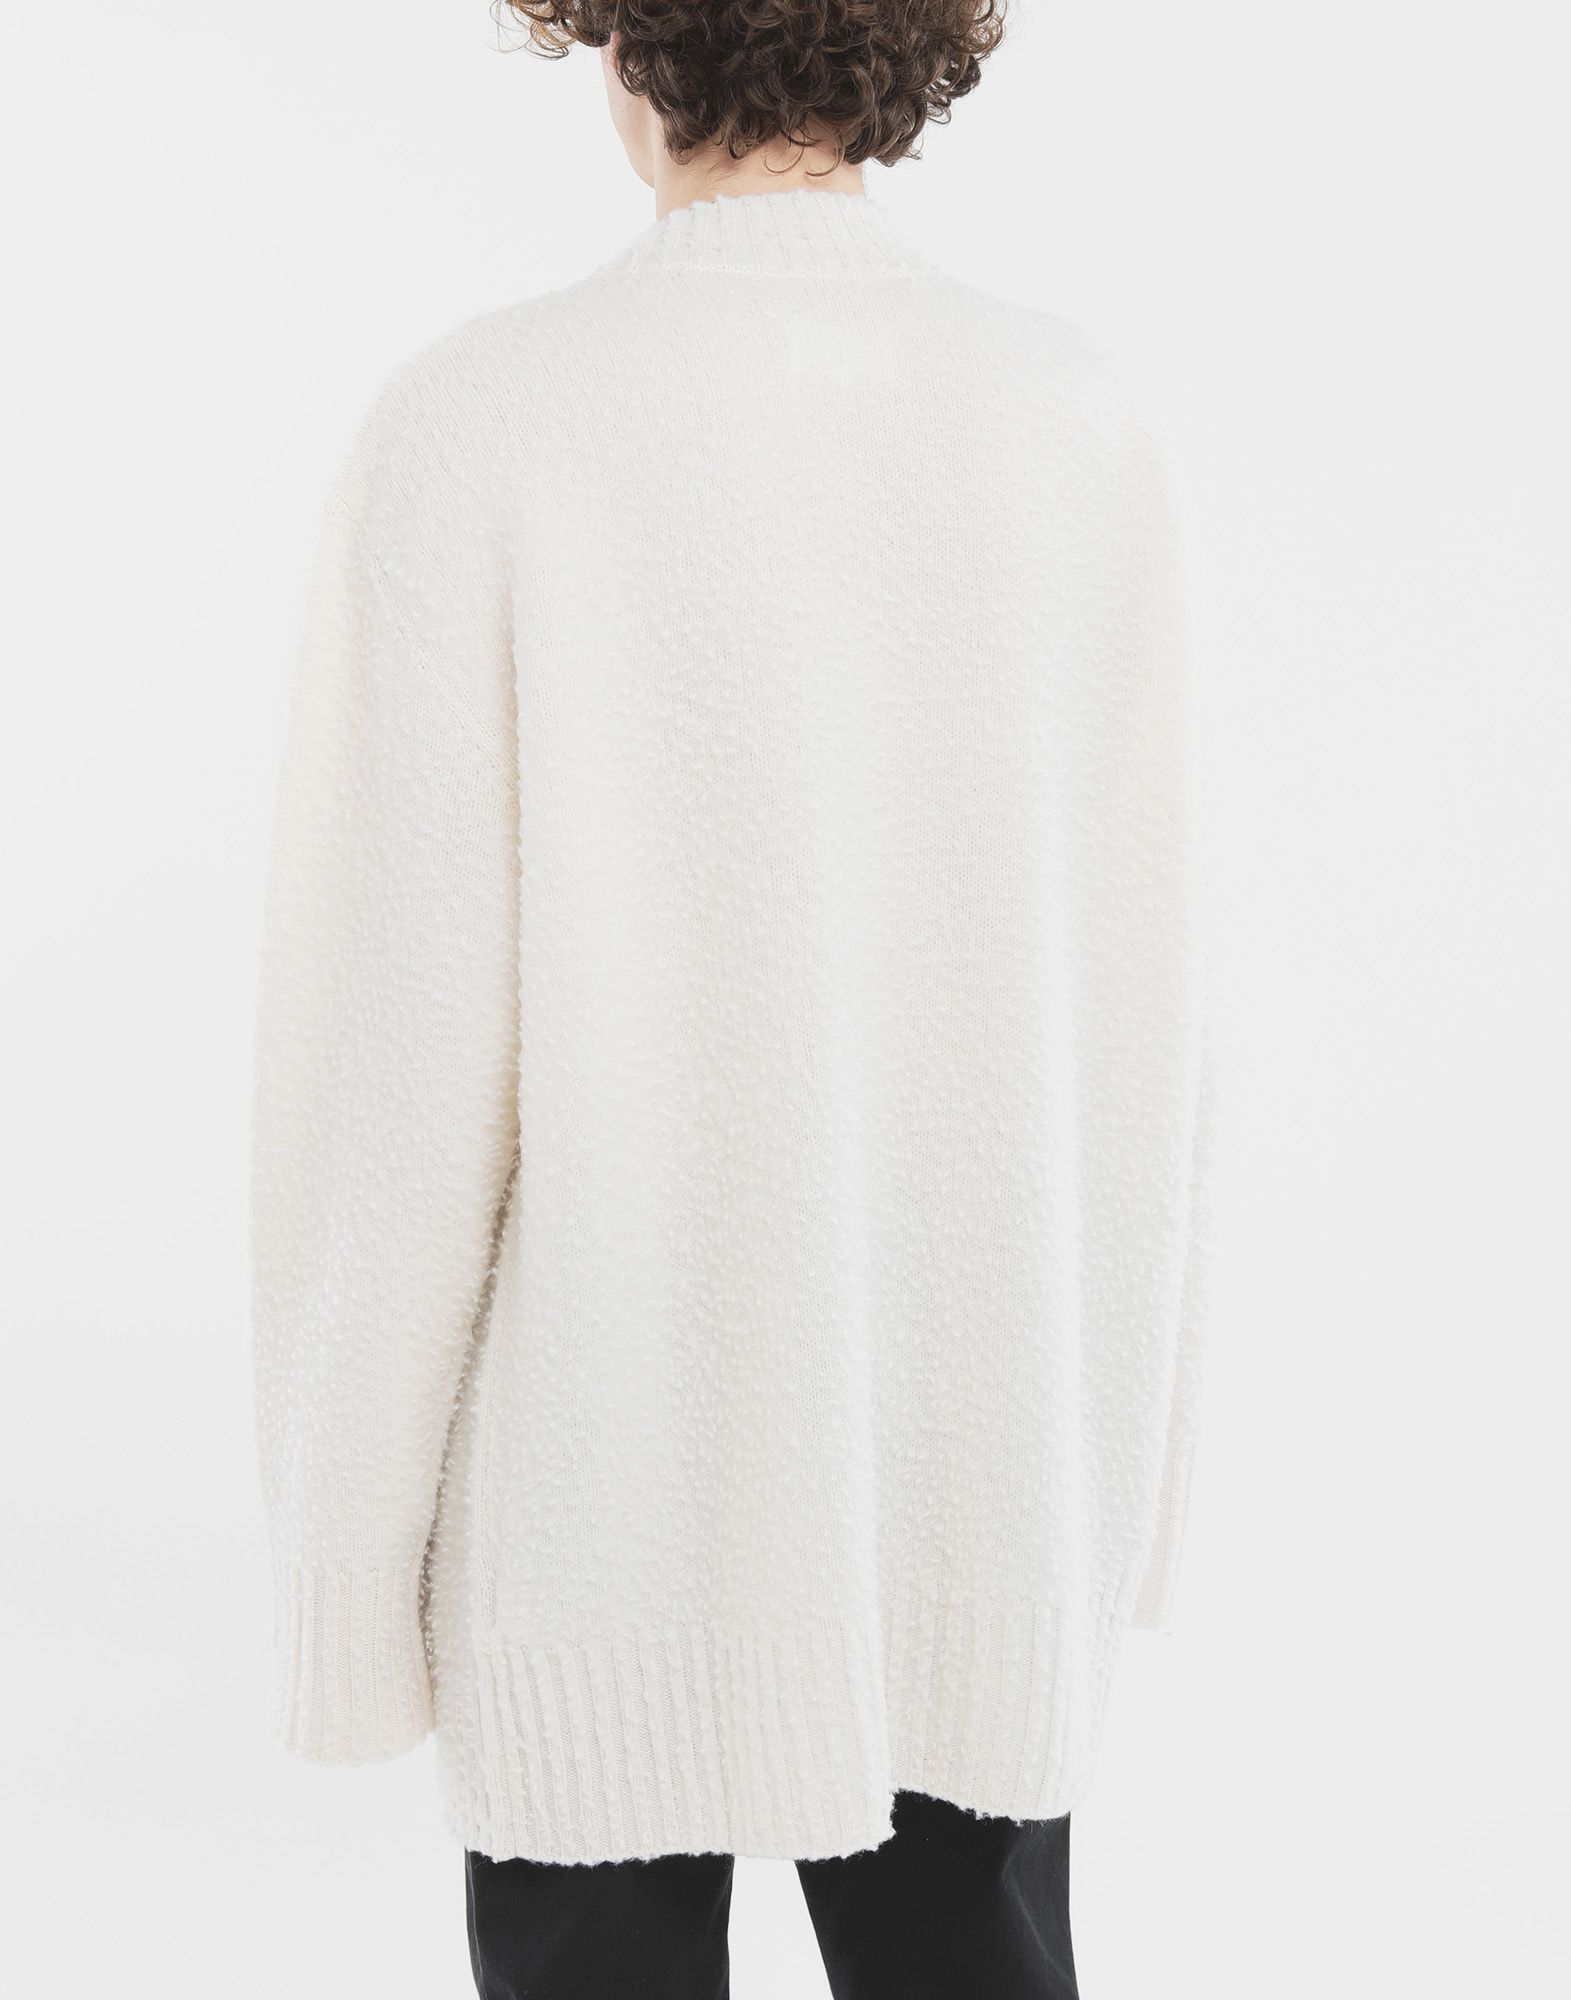 MAISON MARGIELA Oversized wool sweater Crewneck sweater Man e